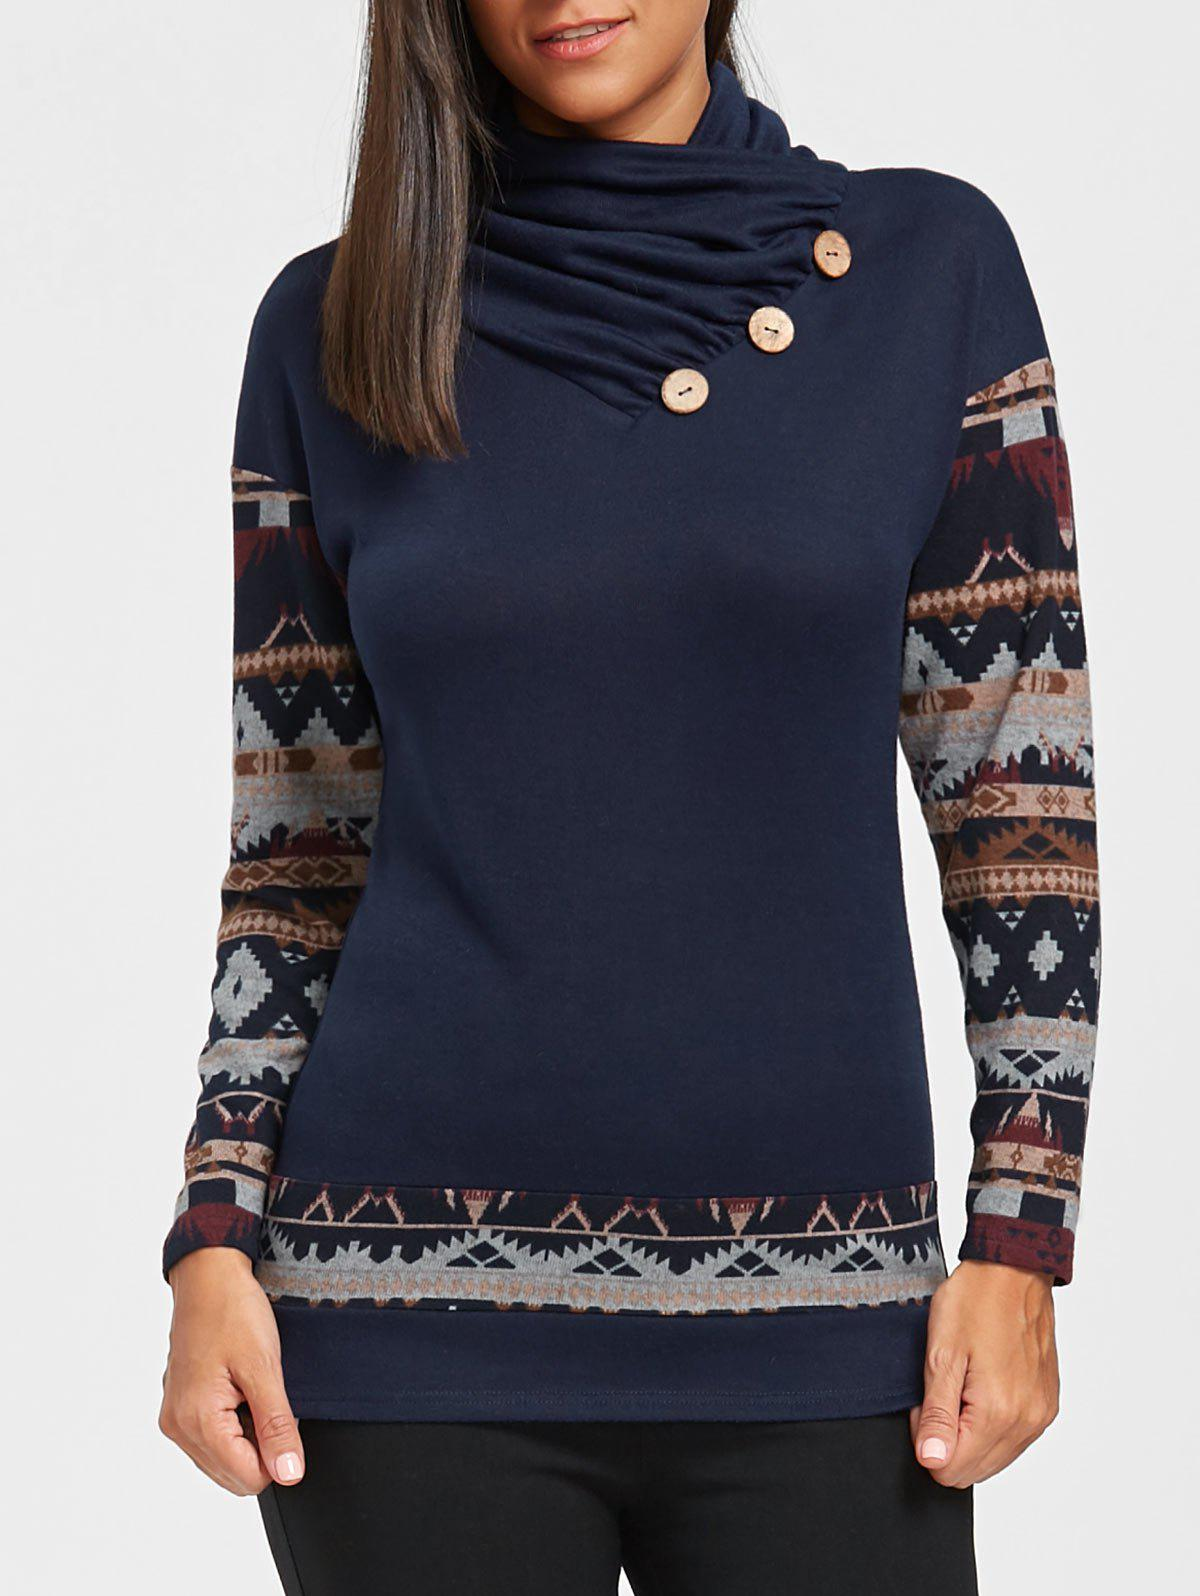 New Button Embellished Tribal Print Top